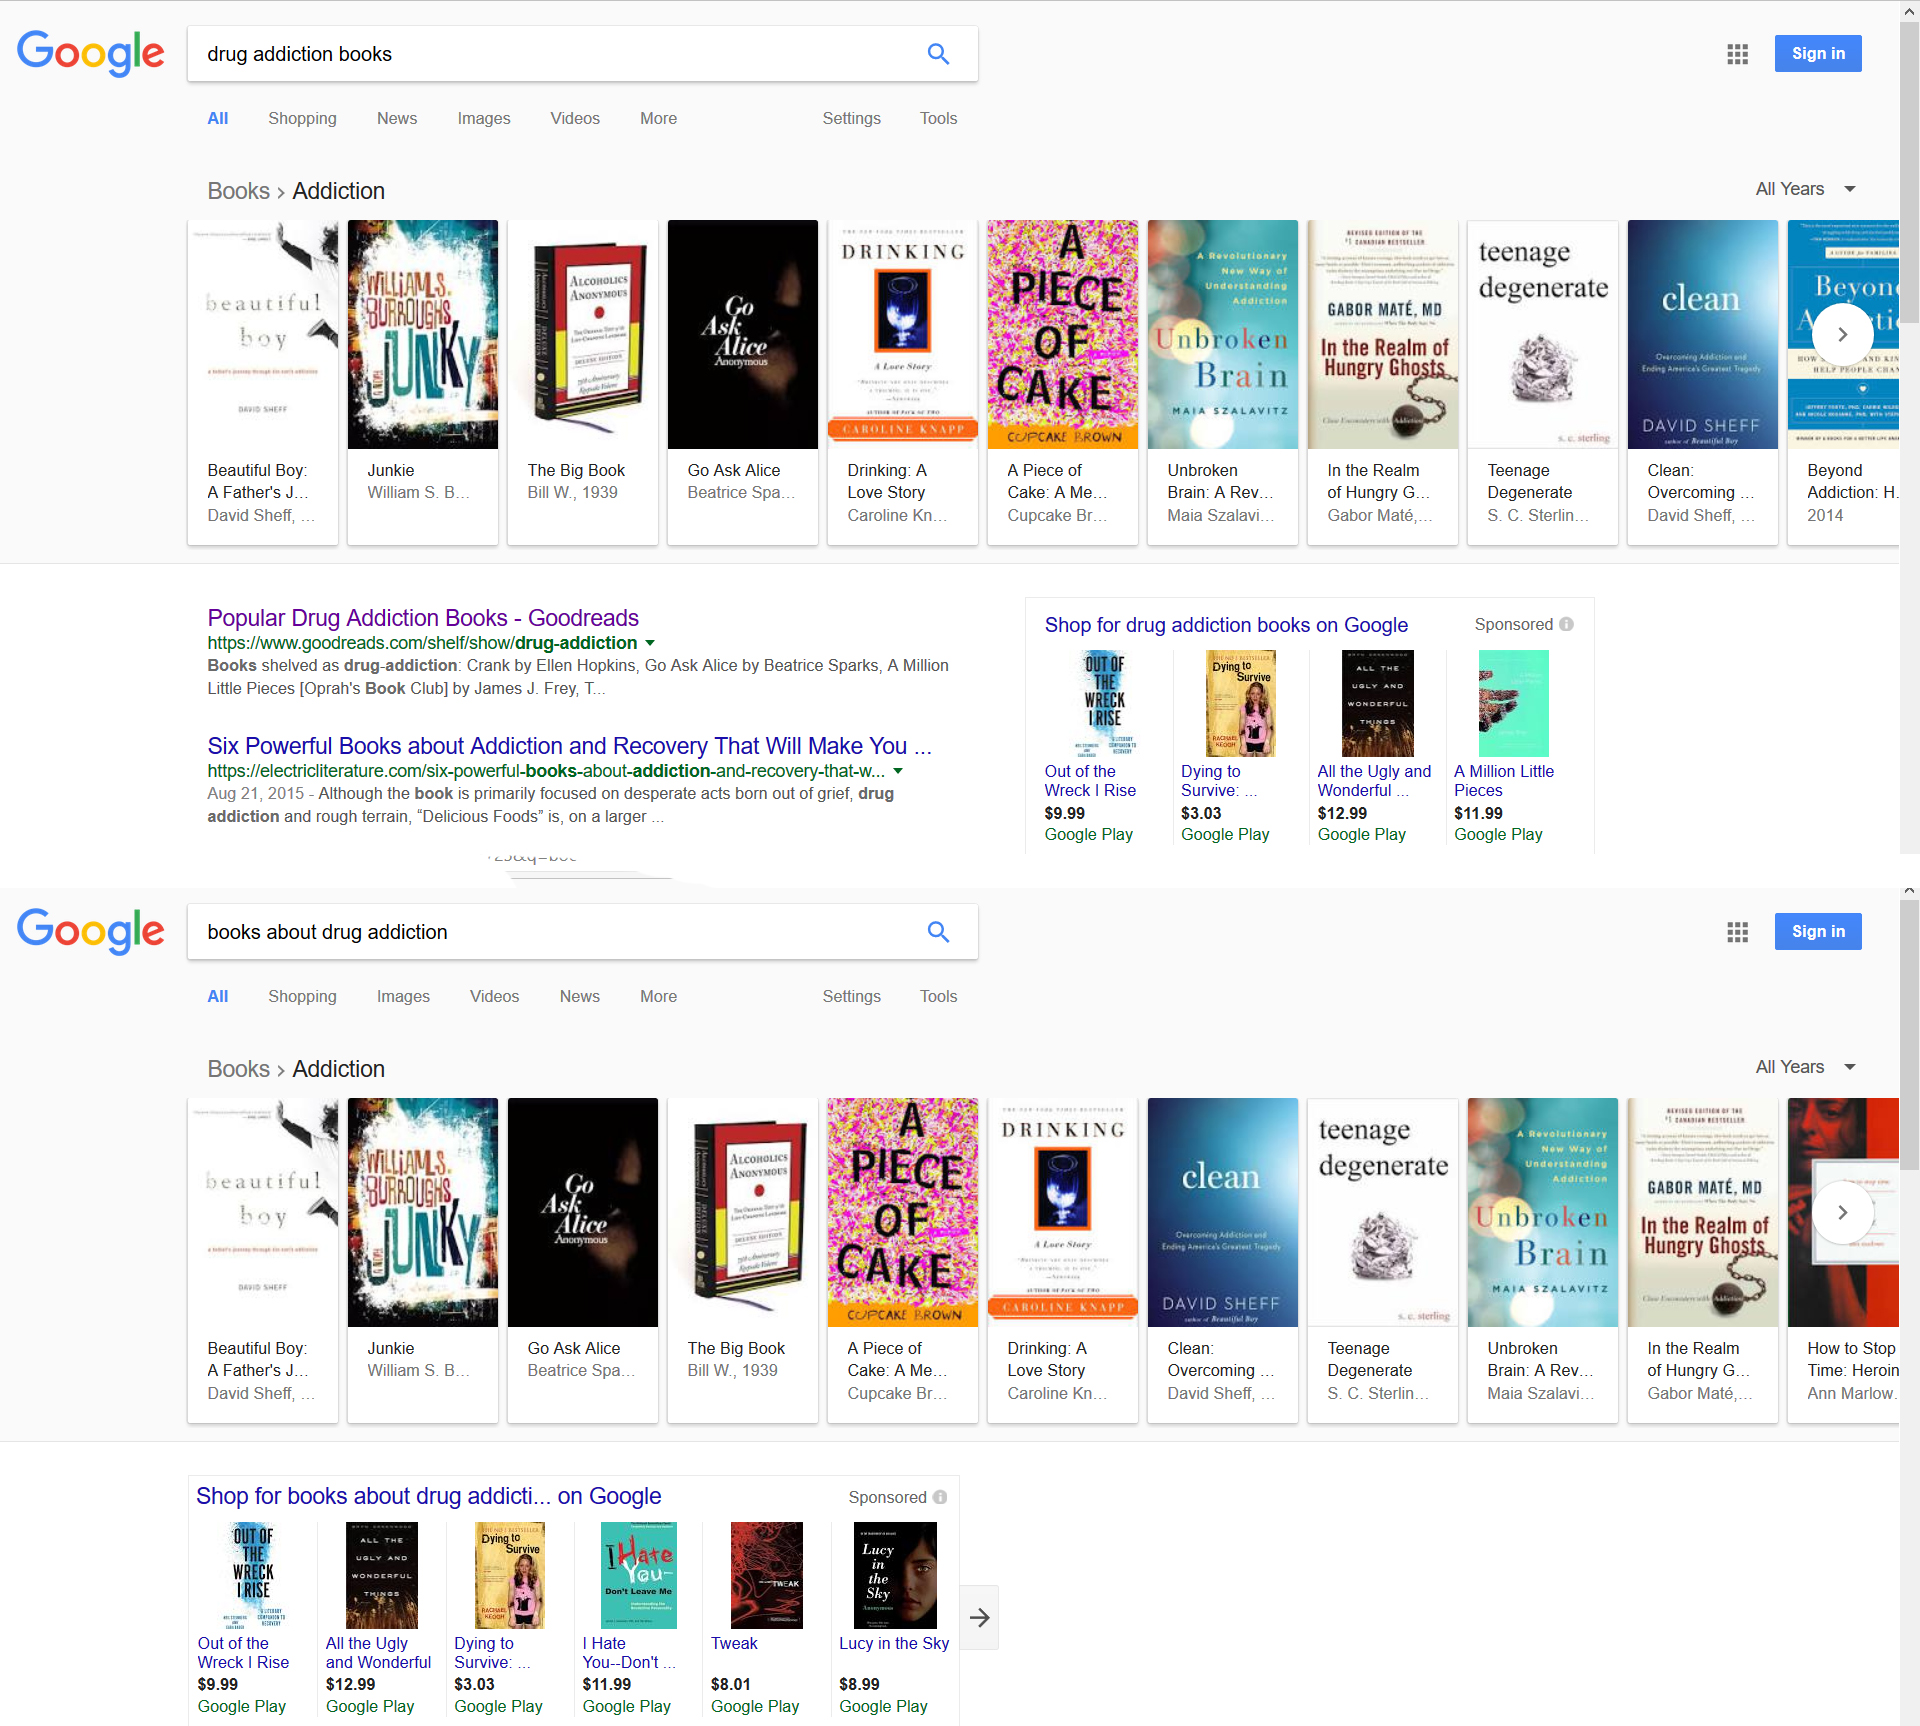 Teenage Degenerate is in the Google books search results for drug addiction books and books about drug addiction.